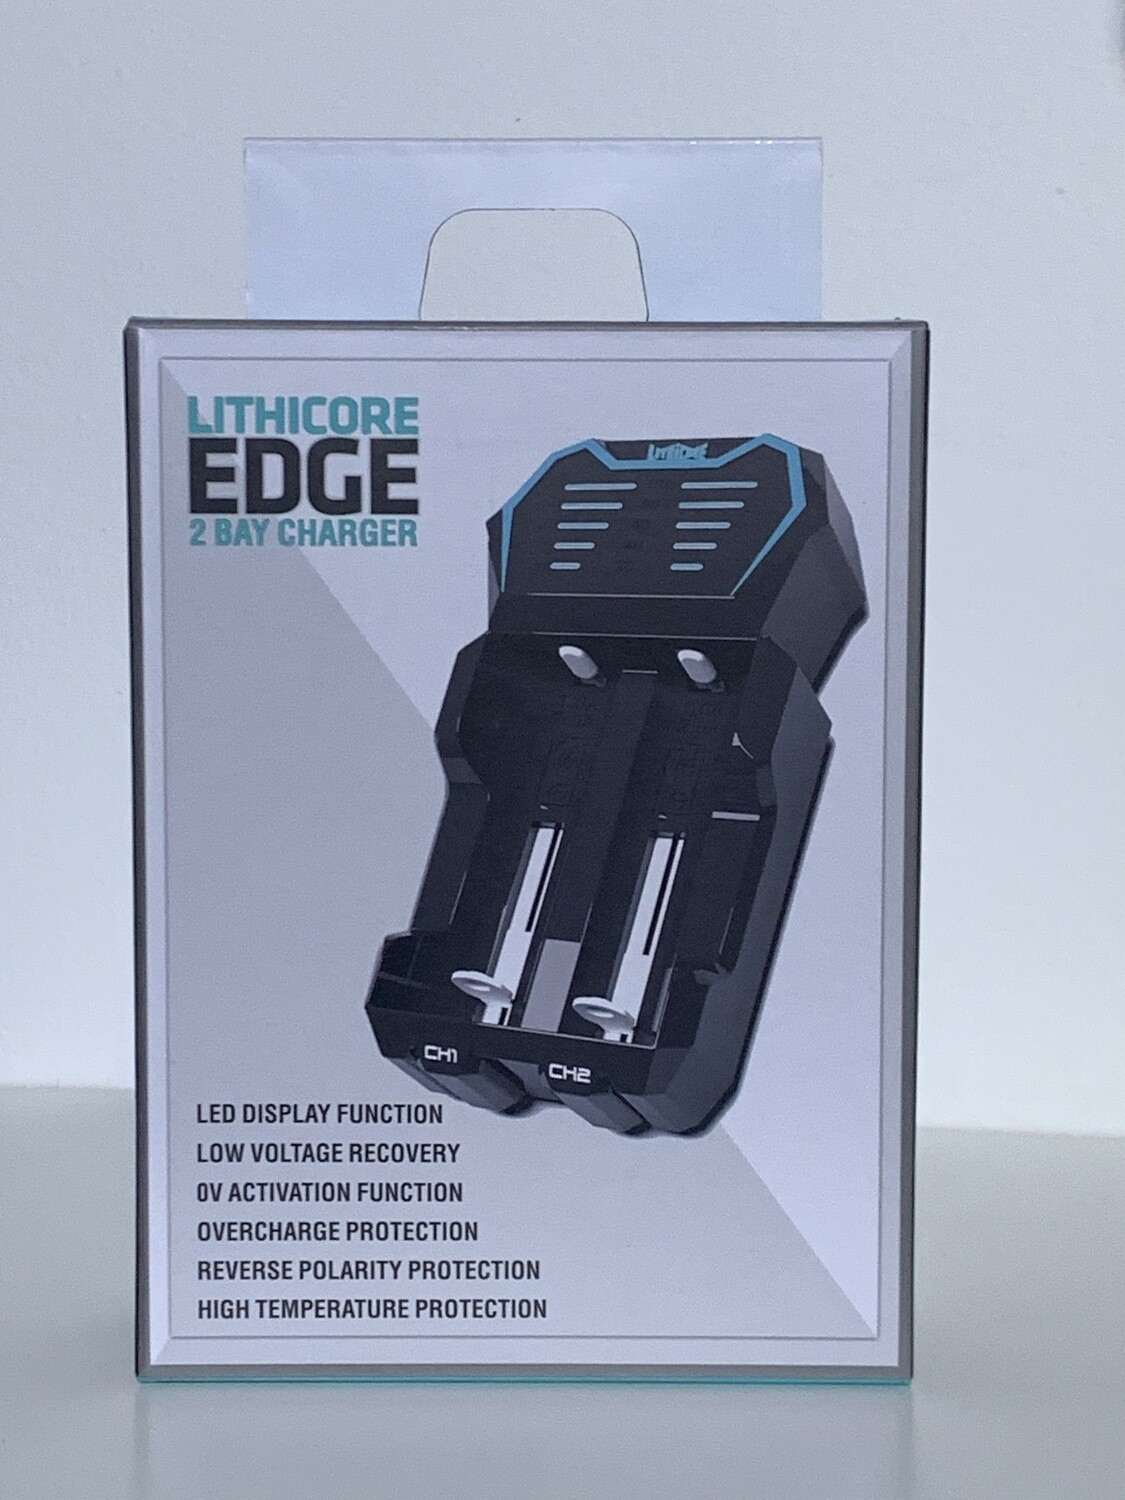 Lithicore Edge2 Bay Battery Charger